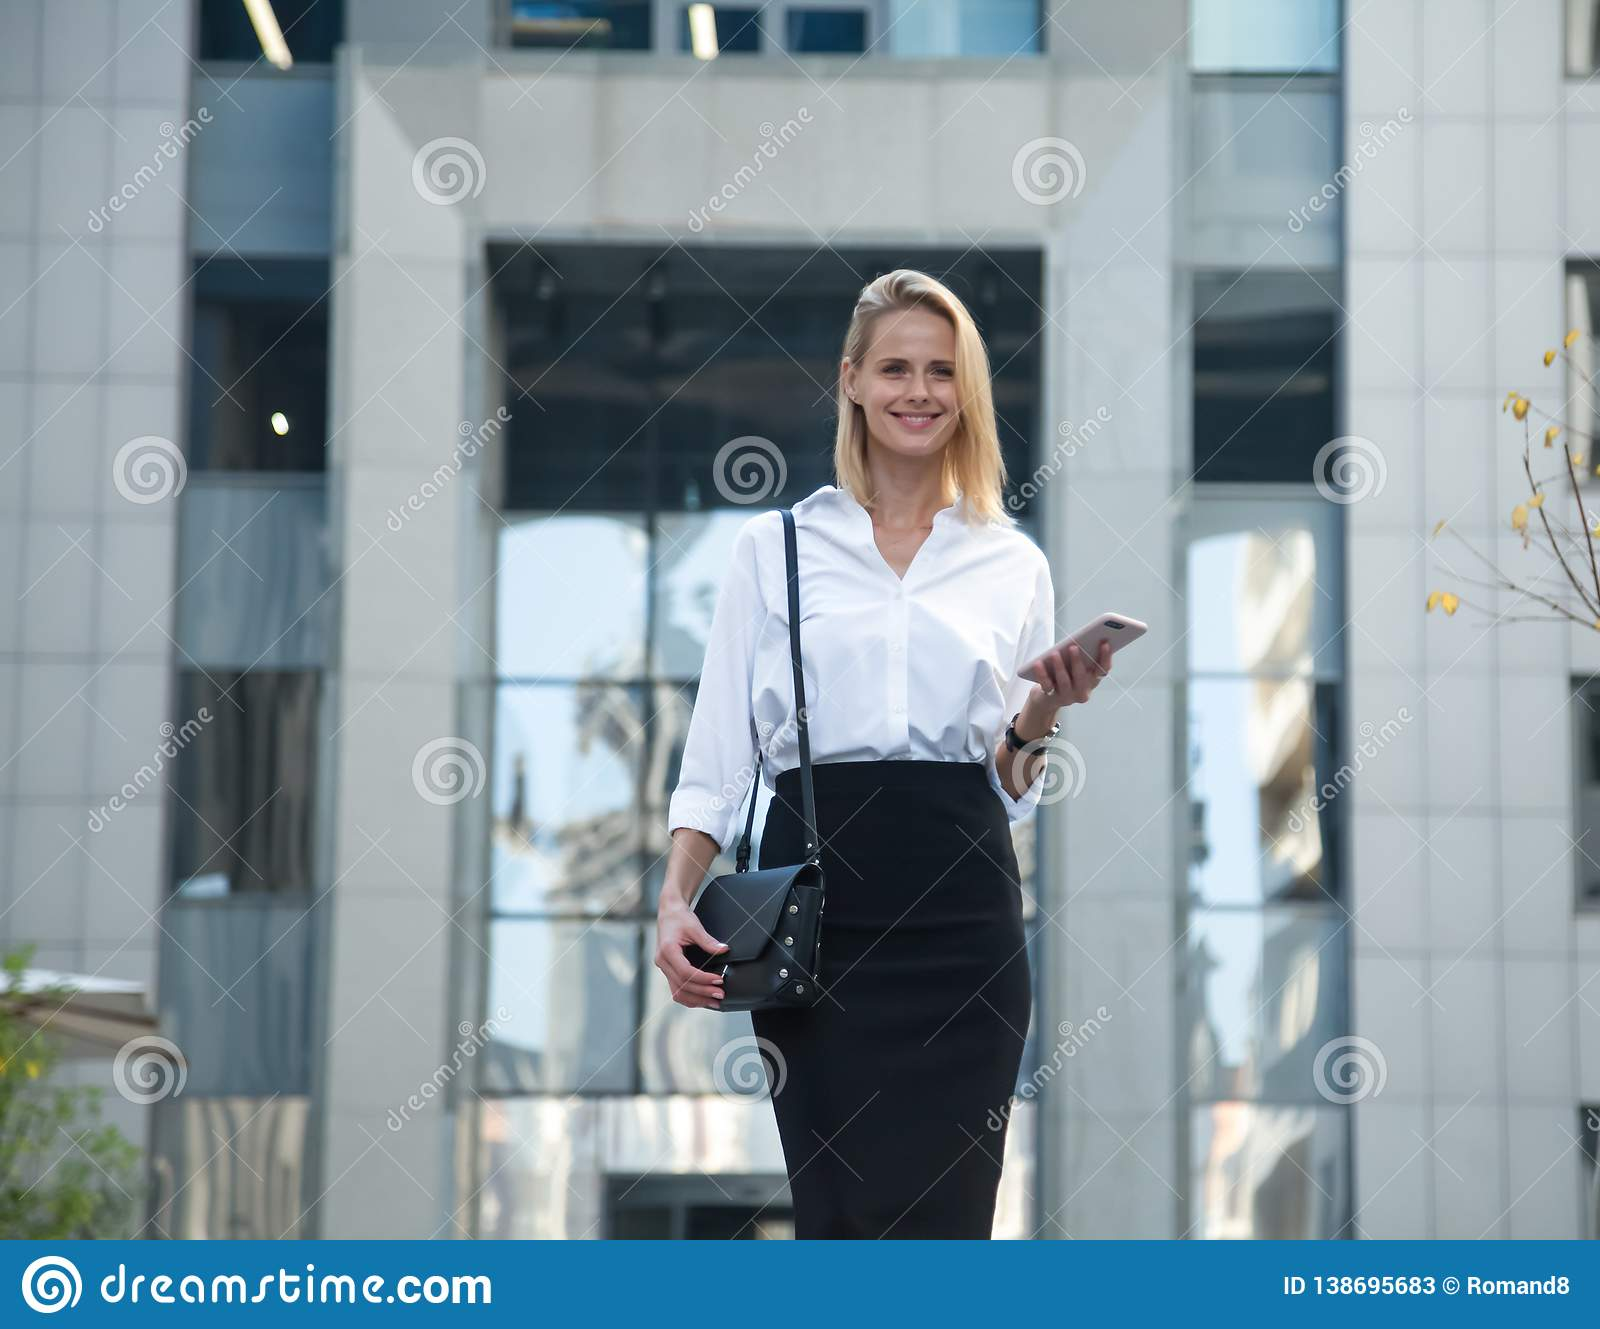 Young business woman in front of office building using her cell phone